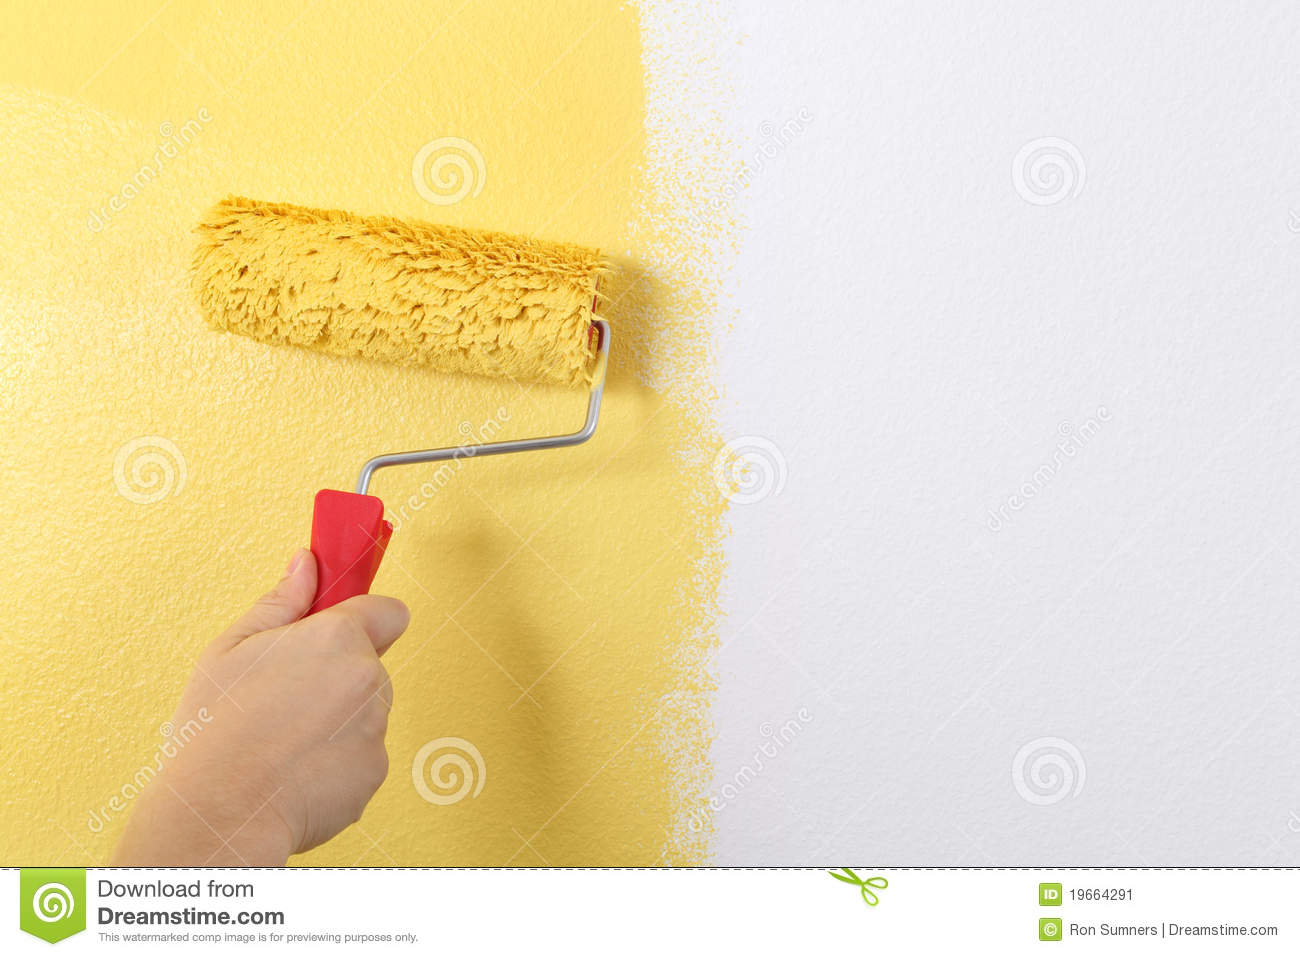 Painting The Wall With A Paint Roller Stock Image - Image of holding ...